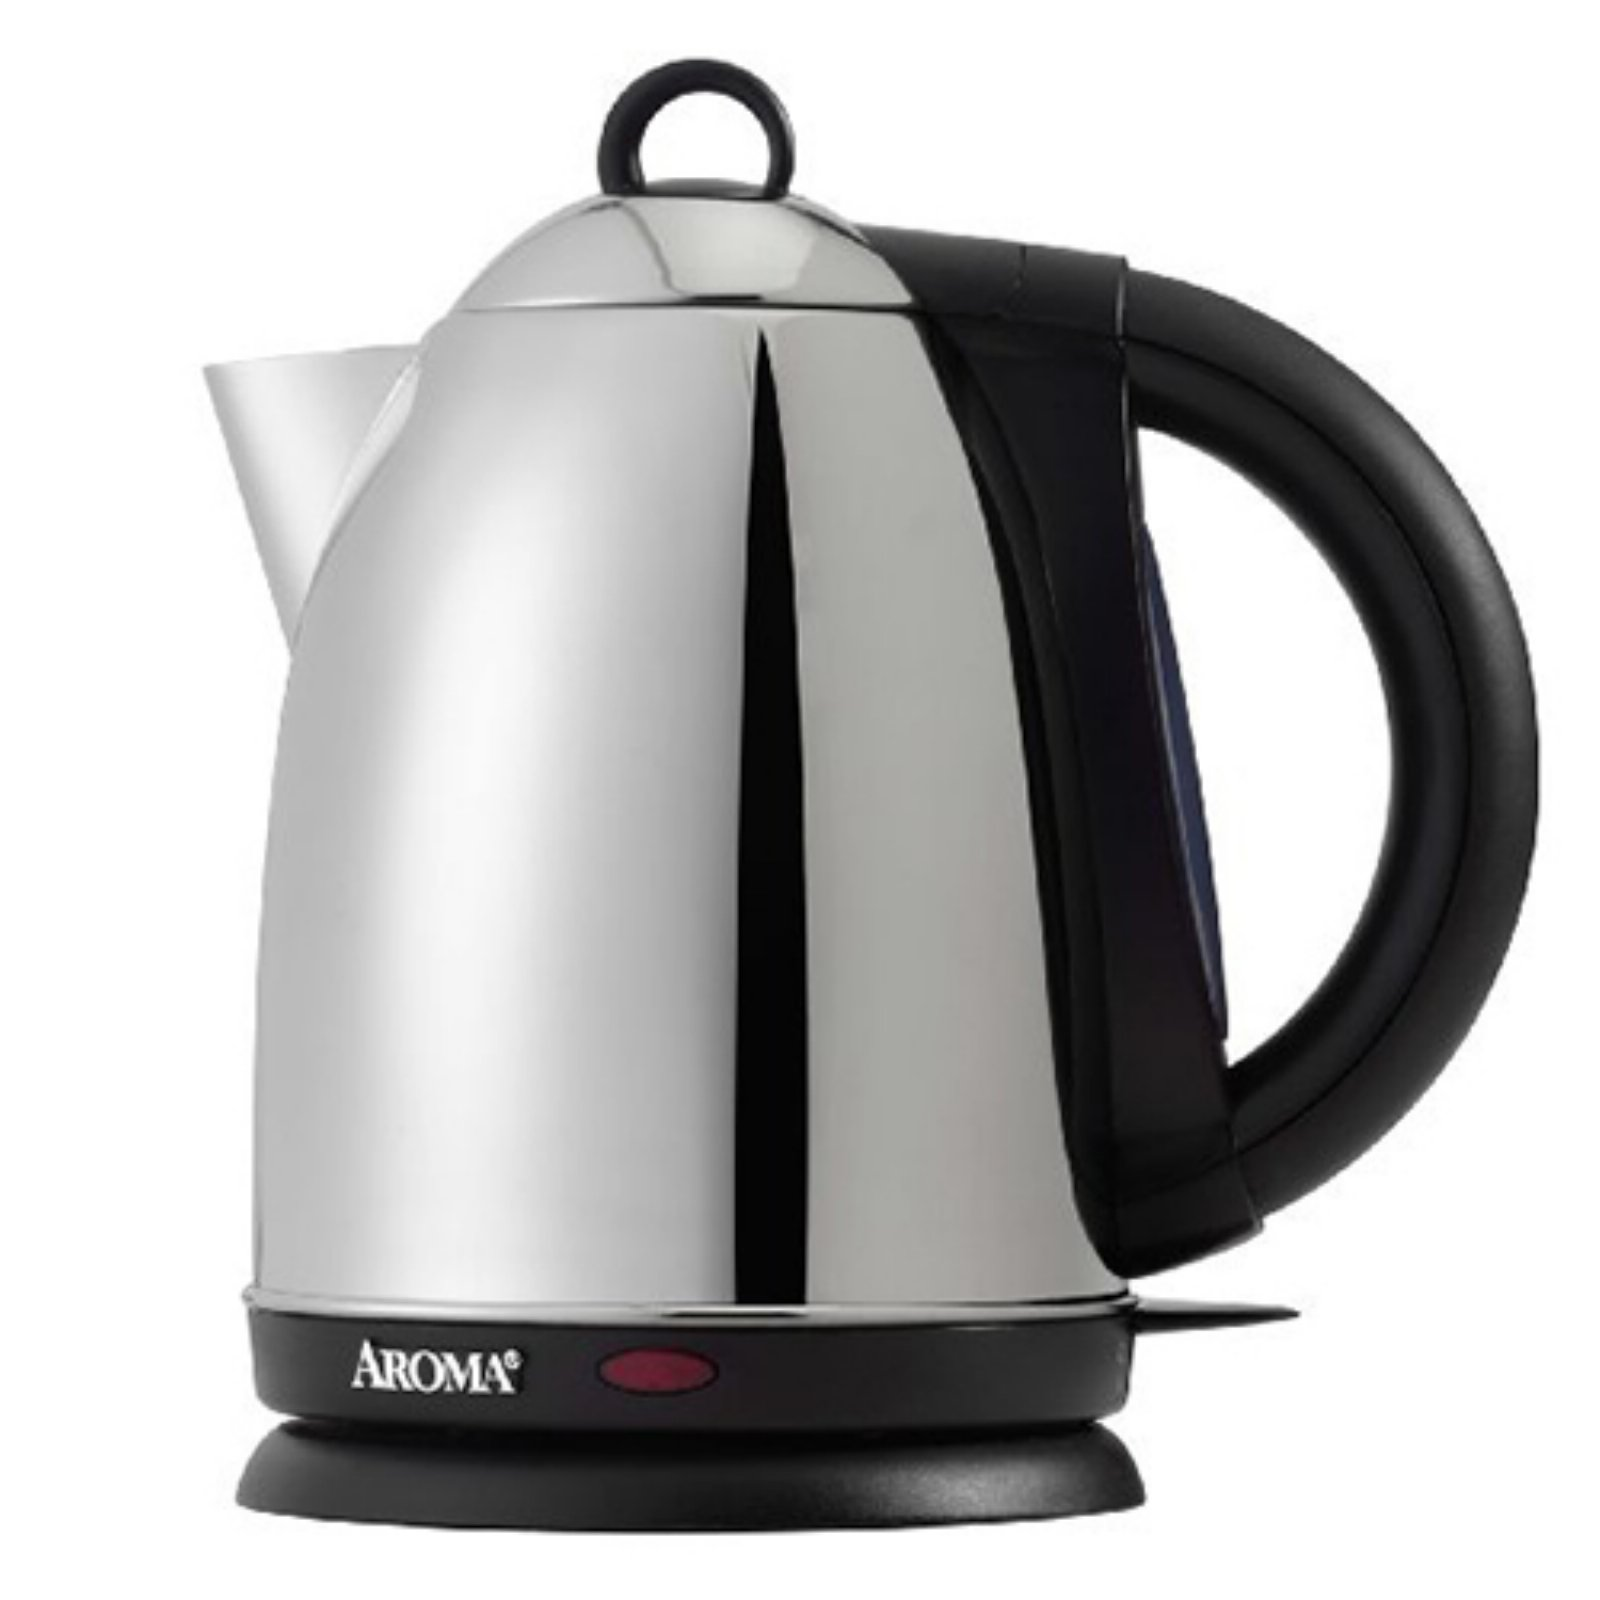 Aroma AWK-125S Hot H20 X-Press 7-Cup Electric Water Kettle by Englewood Marketing Group, Inc. (EMG)